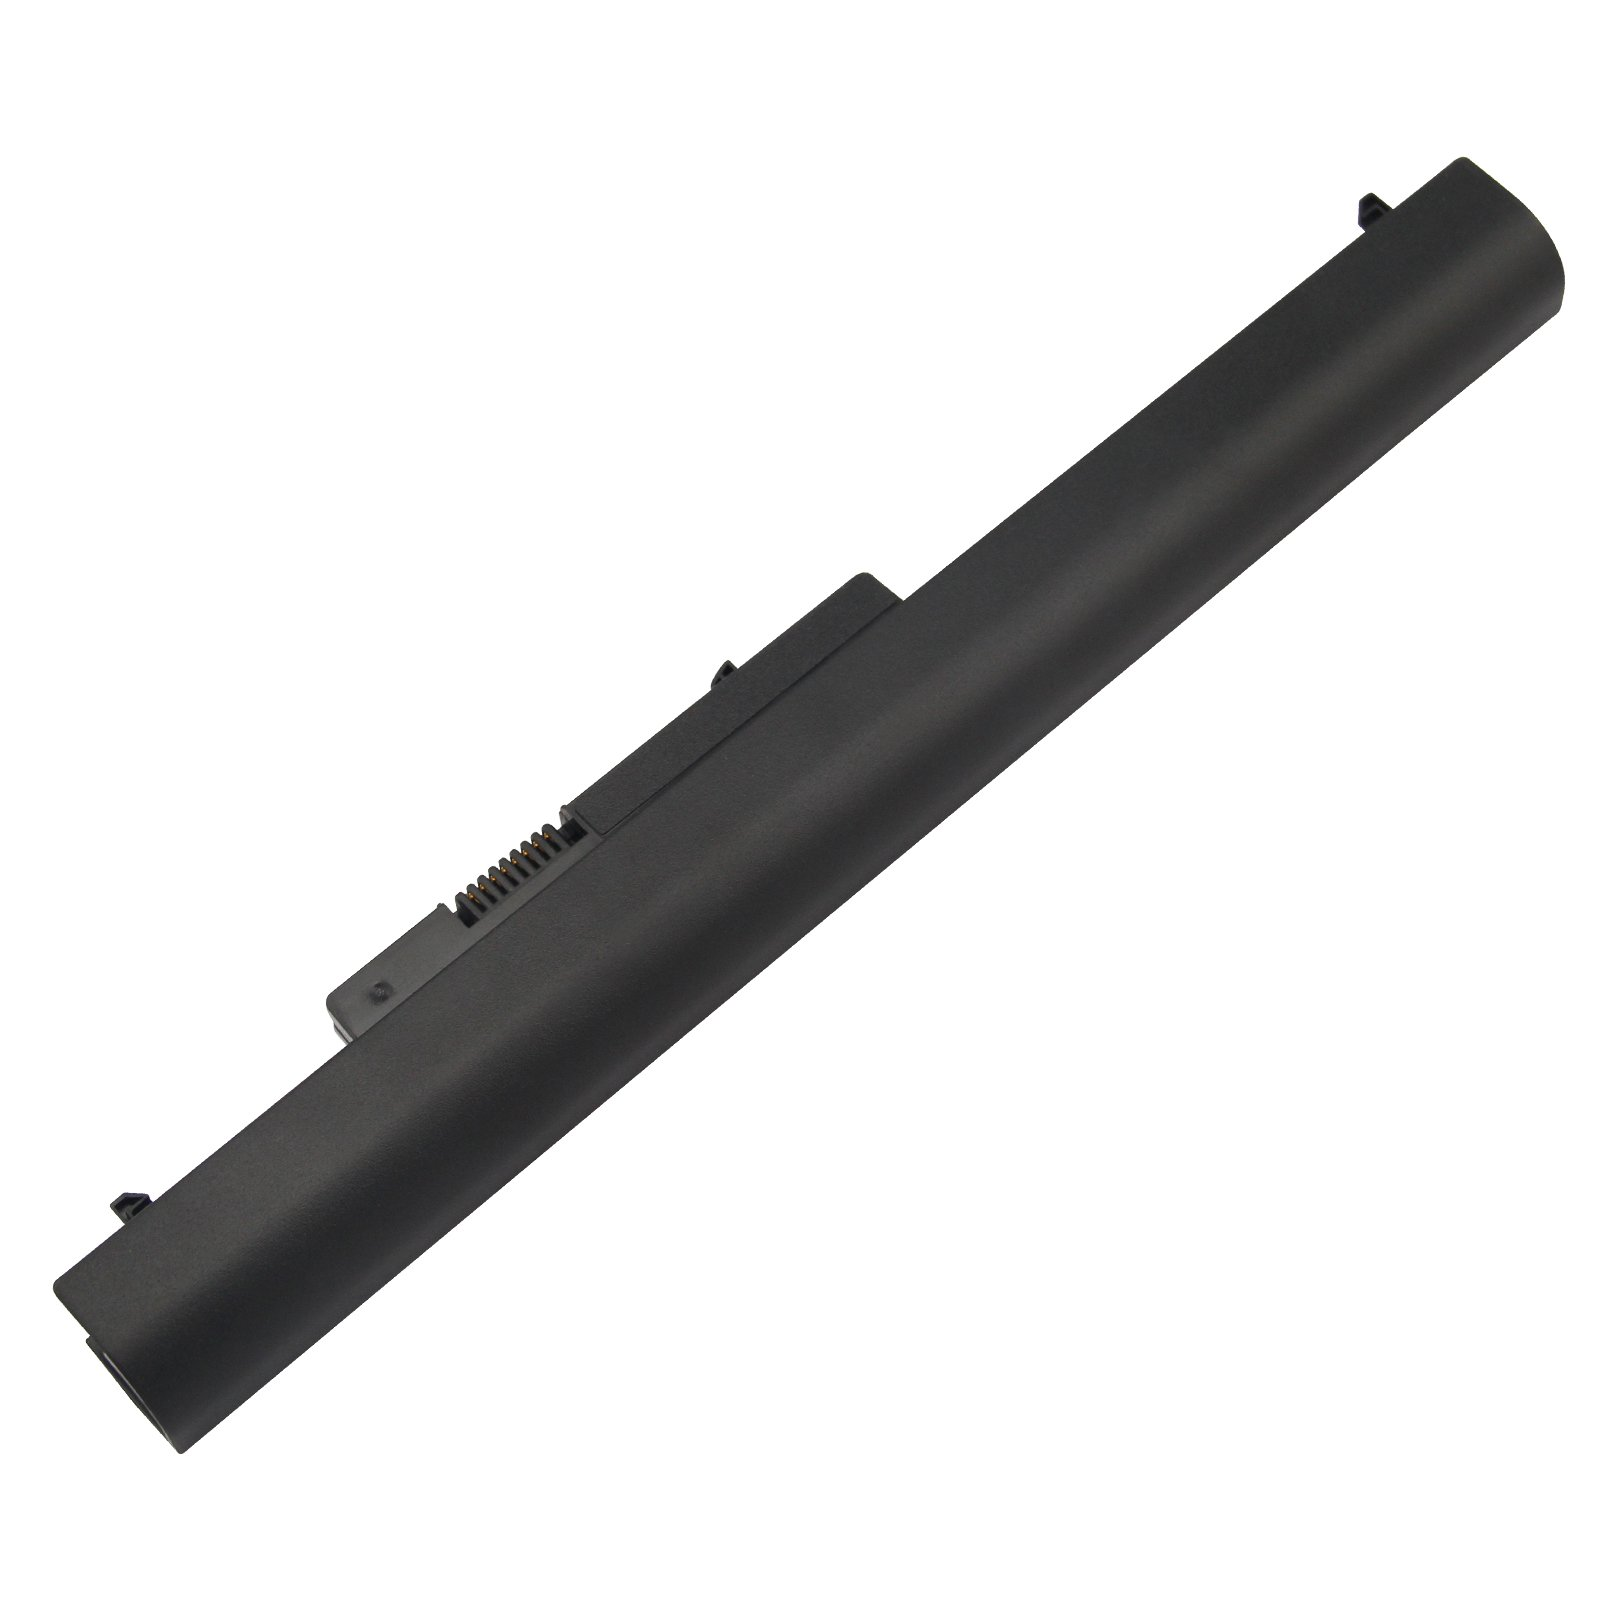 Bateria para HP MR03 HSTNN-IB5T 740005-121 740722-001 HP Pavilion 10 TouchSmart Series